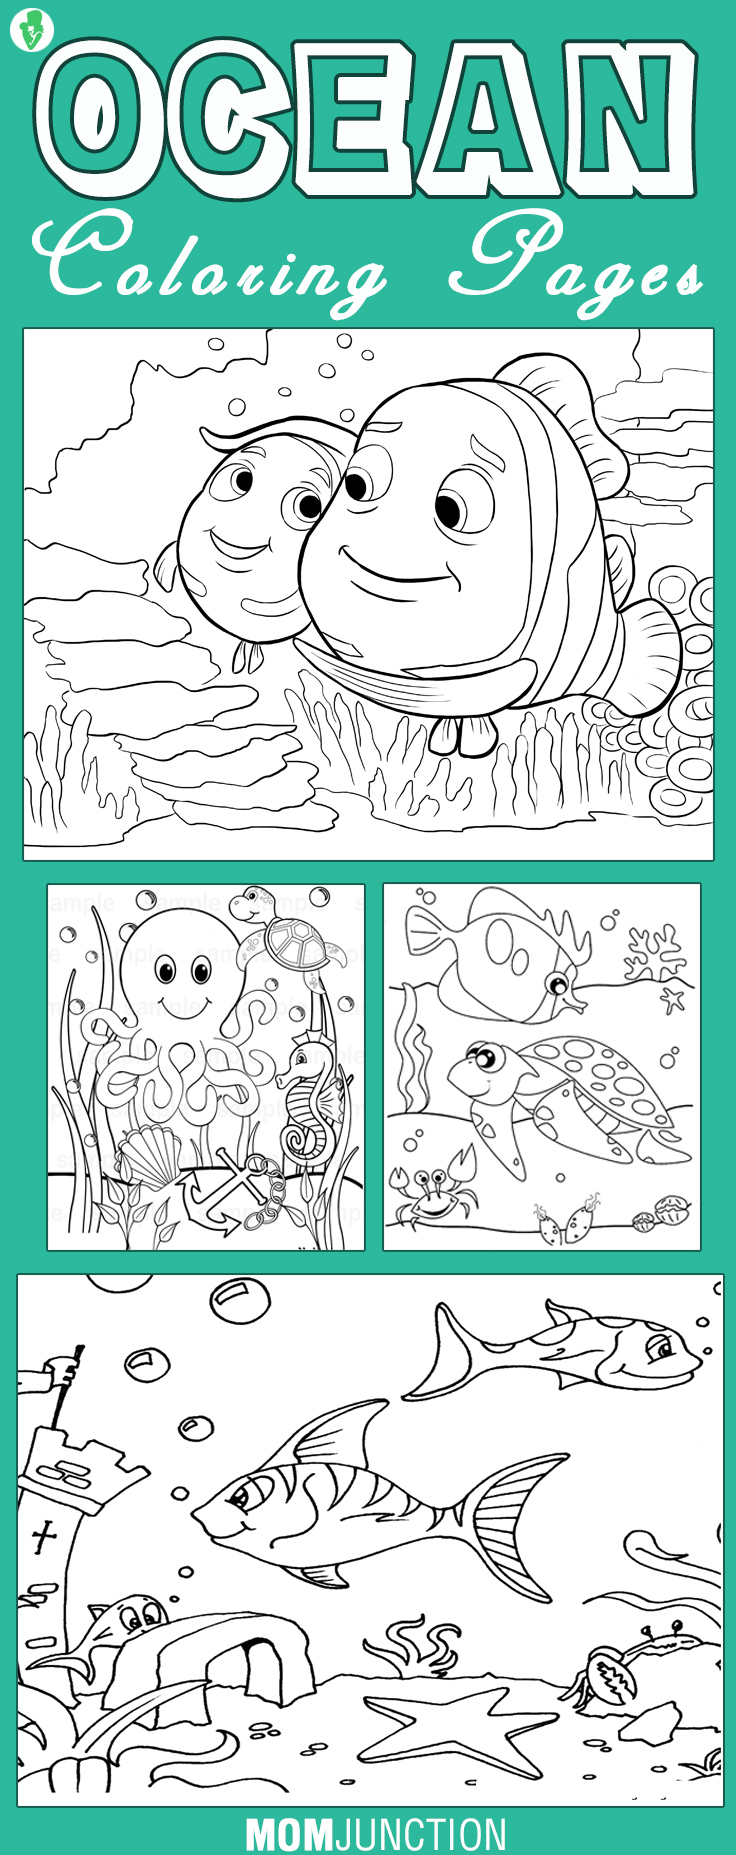 Coloring pages starfish intermediate - Coloring Pages Starfish Intermediate 42